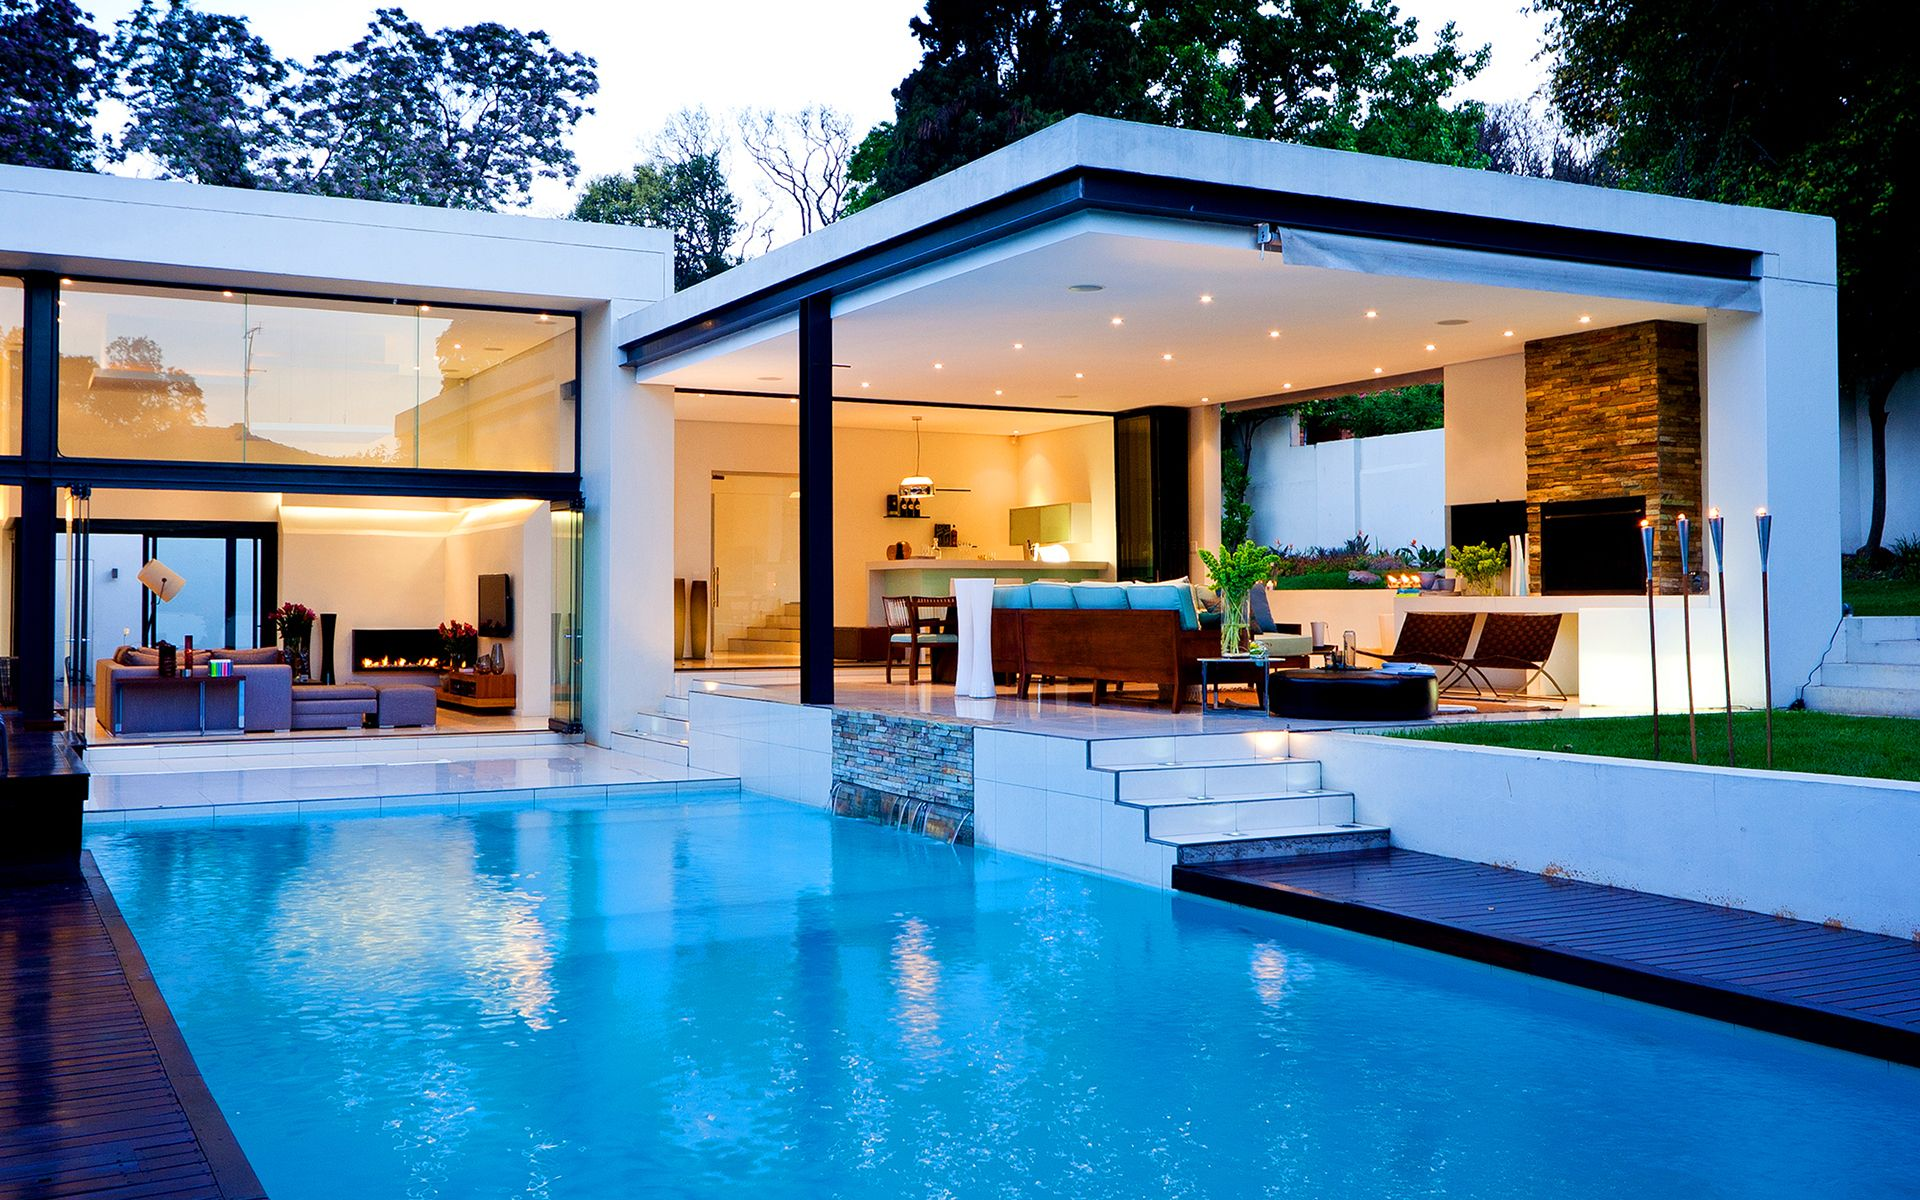 Homes With Pools Luxury House With Pool Wallpapers Pictures